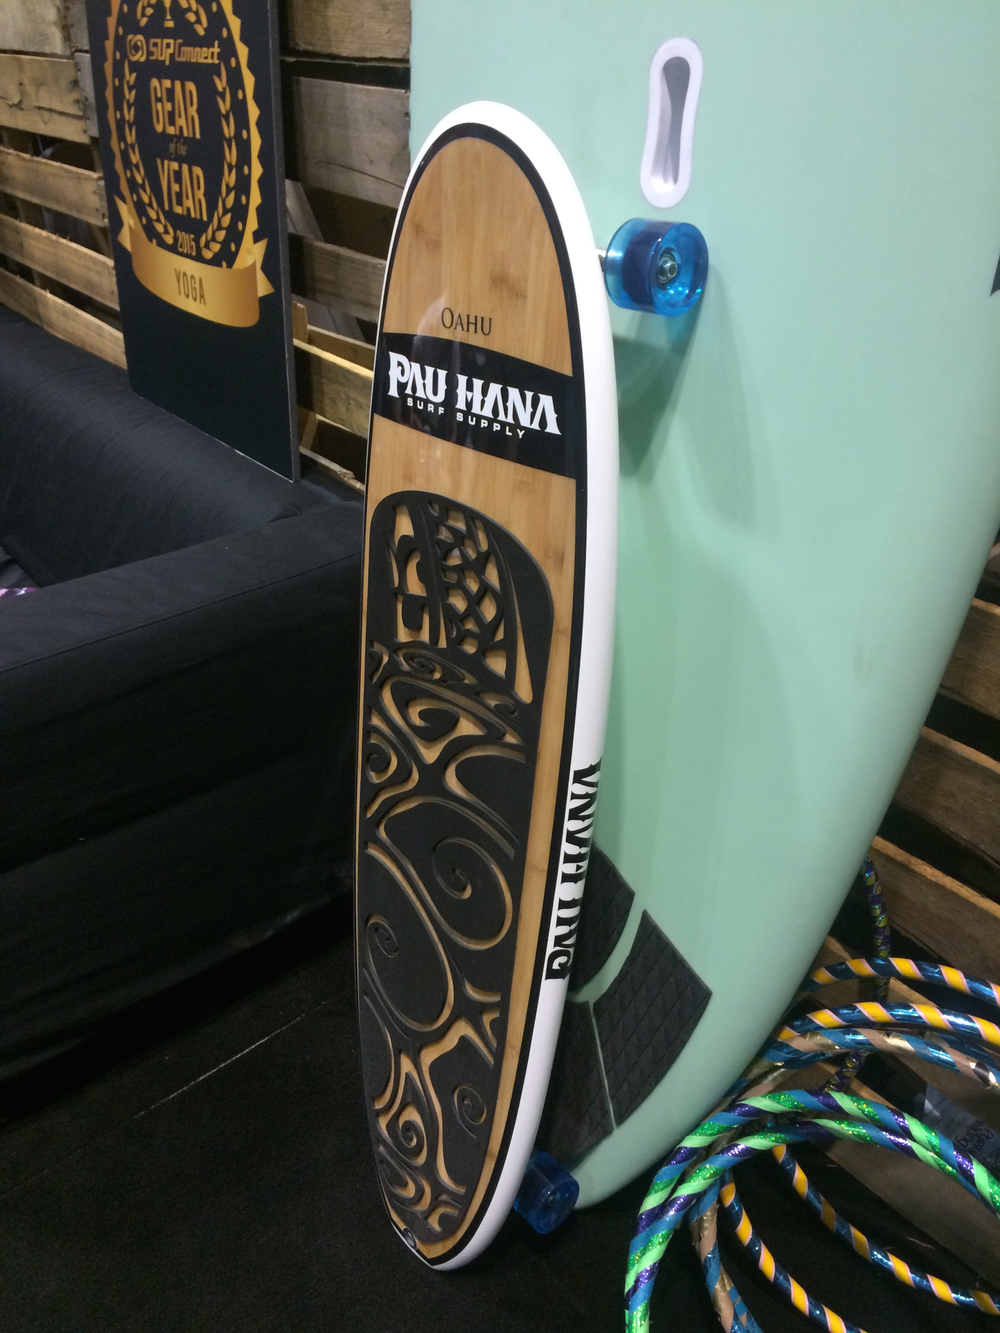 Downsized SUP becomes a skateboard